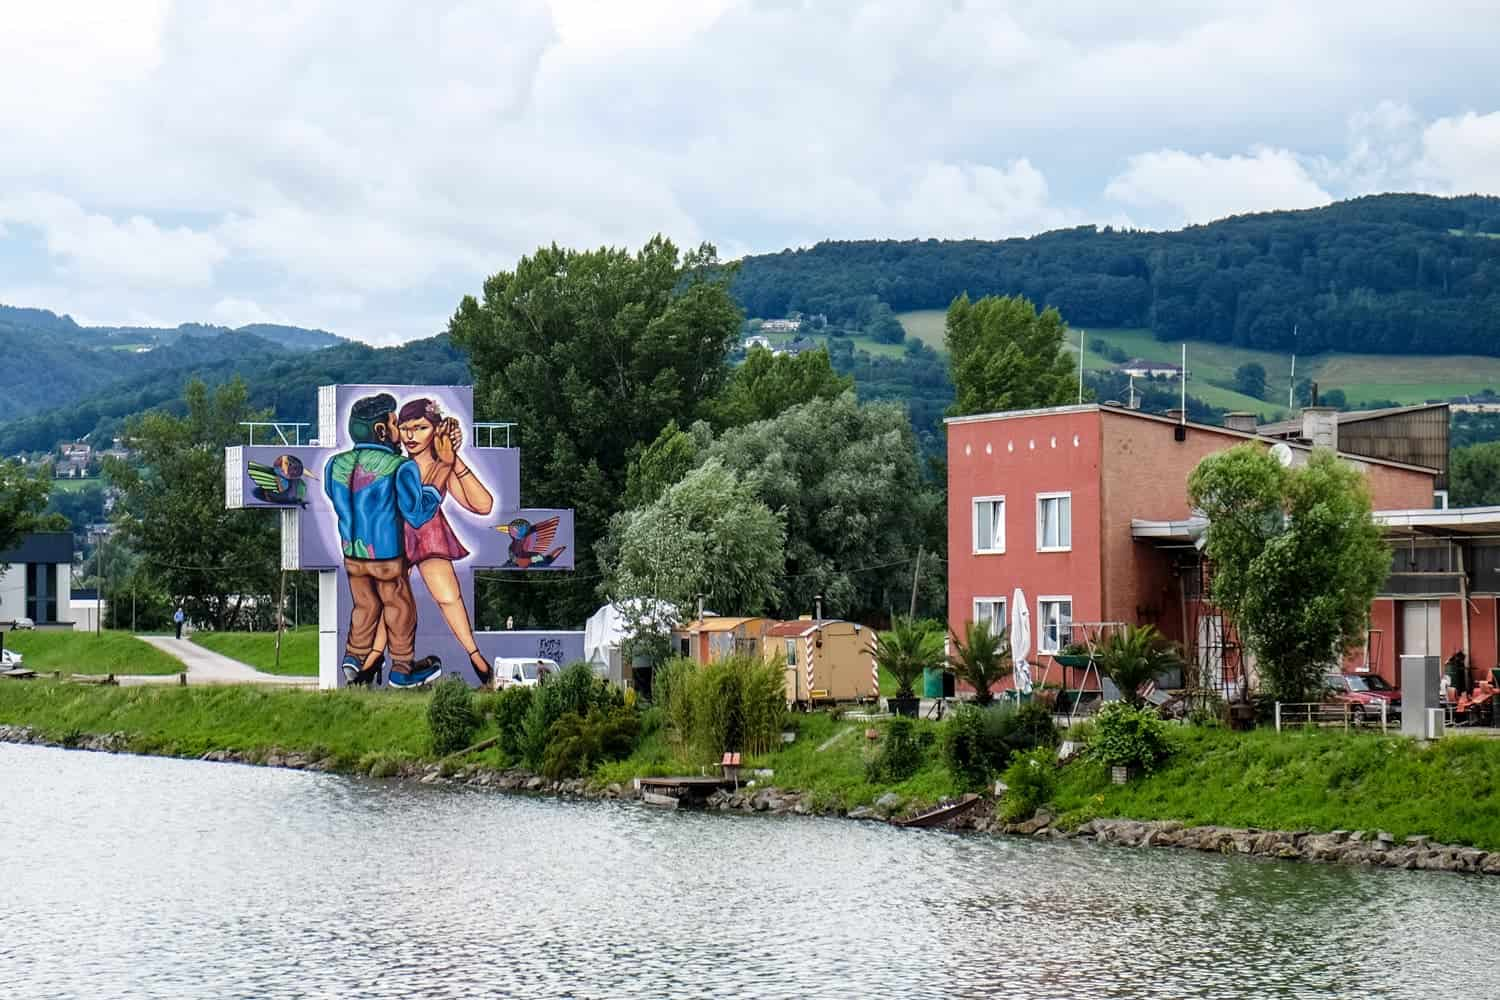 Linz Harbour art mural wall, Upper Austria